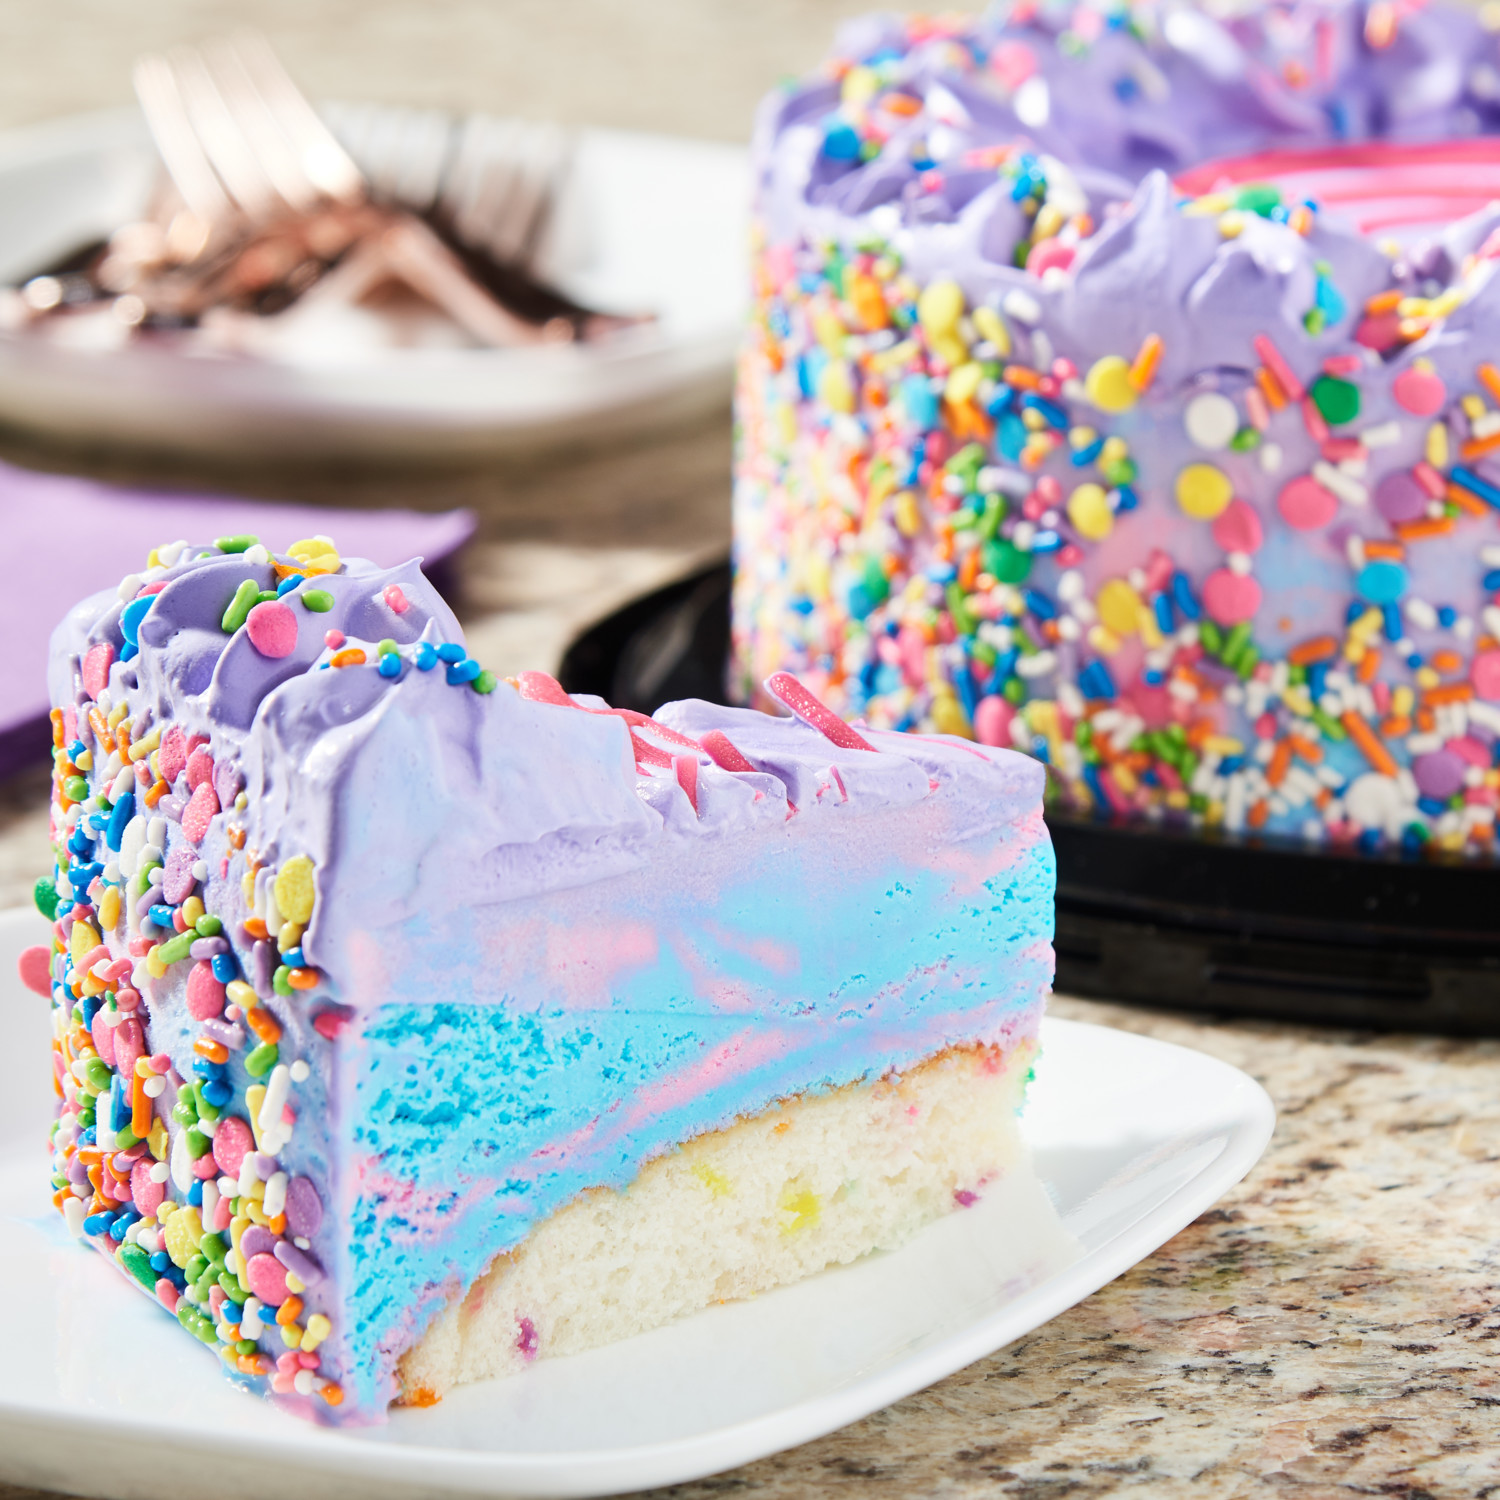 Super Walmart Is Now Selling A Unicorn Ice Cream Cake Simplemost Birthday Cards Printable Trancafe Filternl